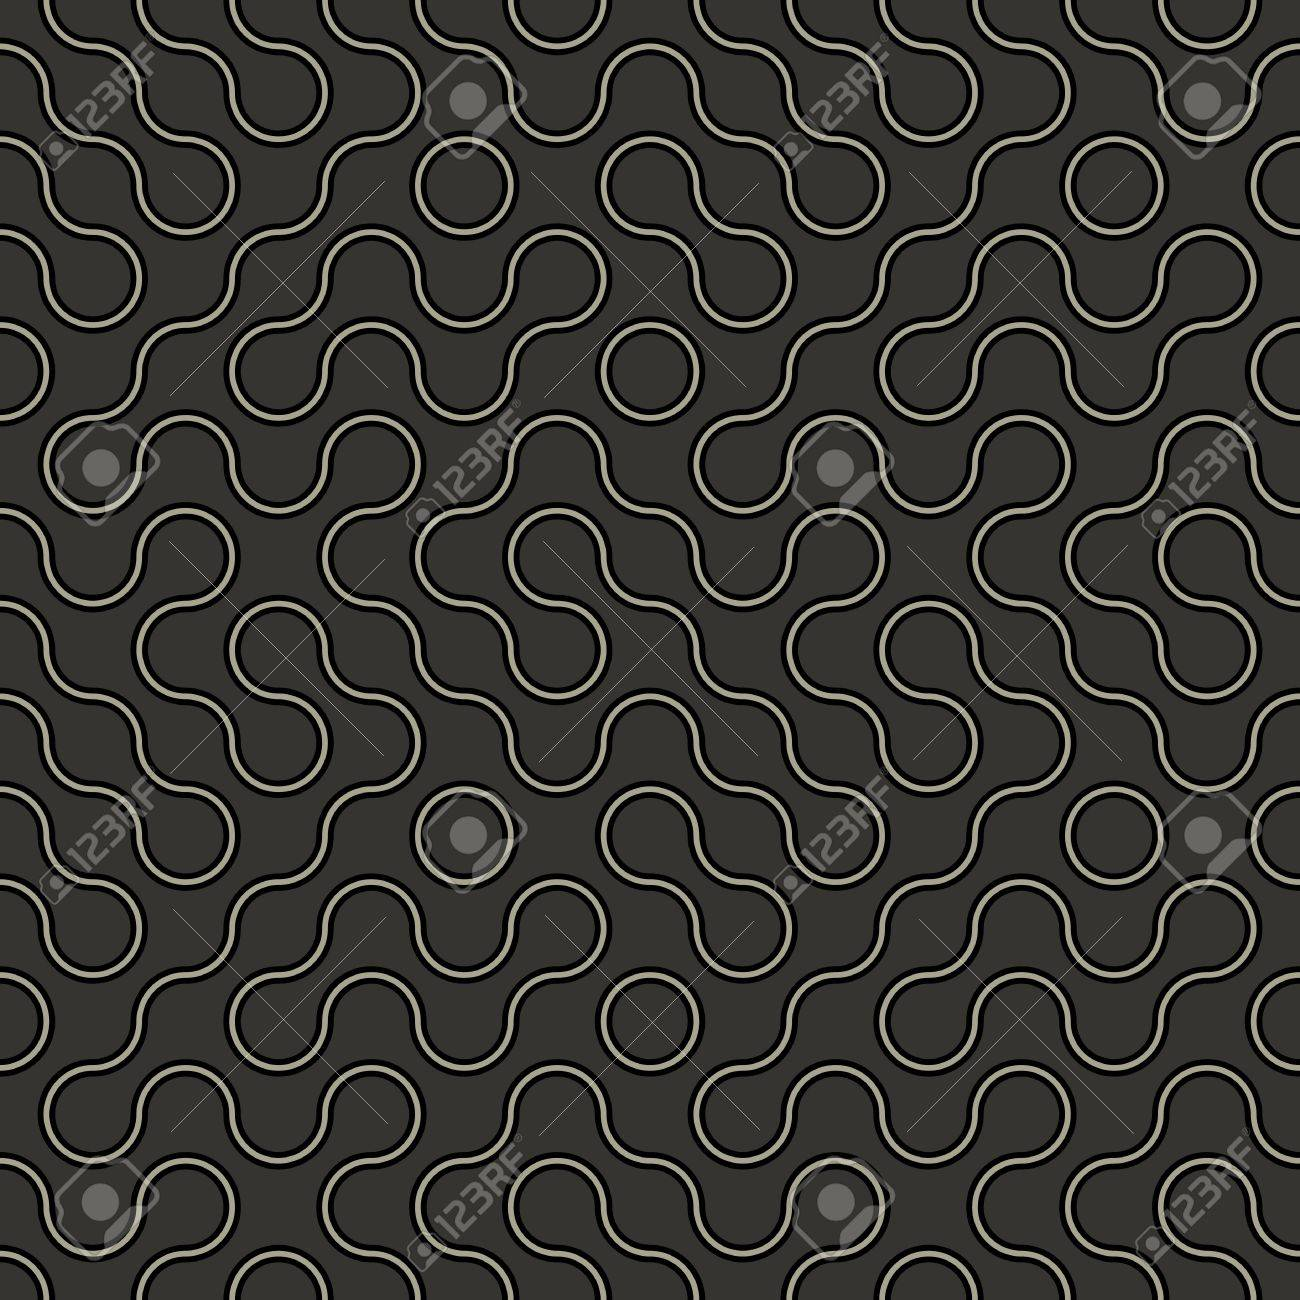 Simple abstract geometric vector modern pattern - curved lines on dark background Stock Vector - 19975394